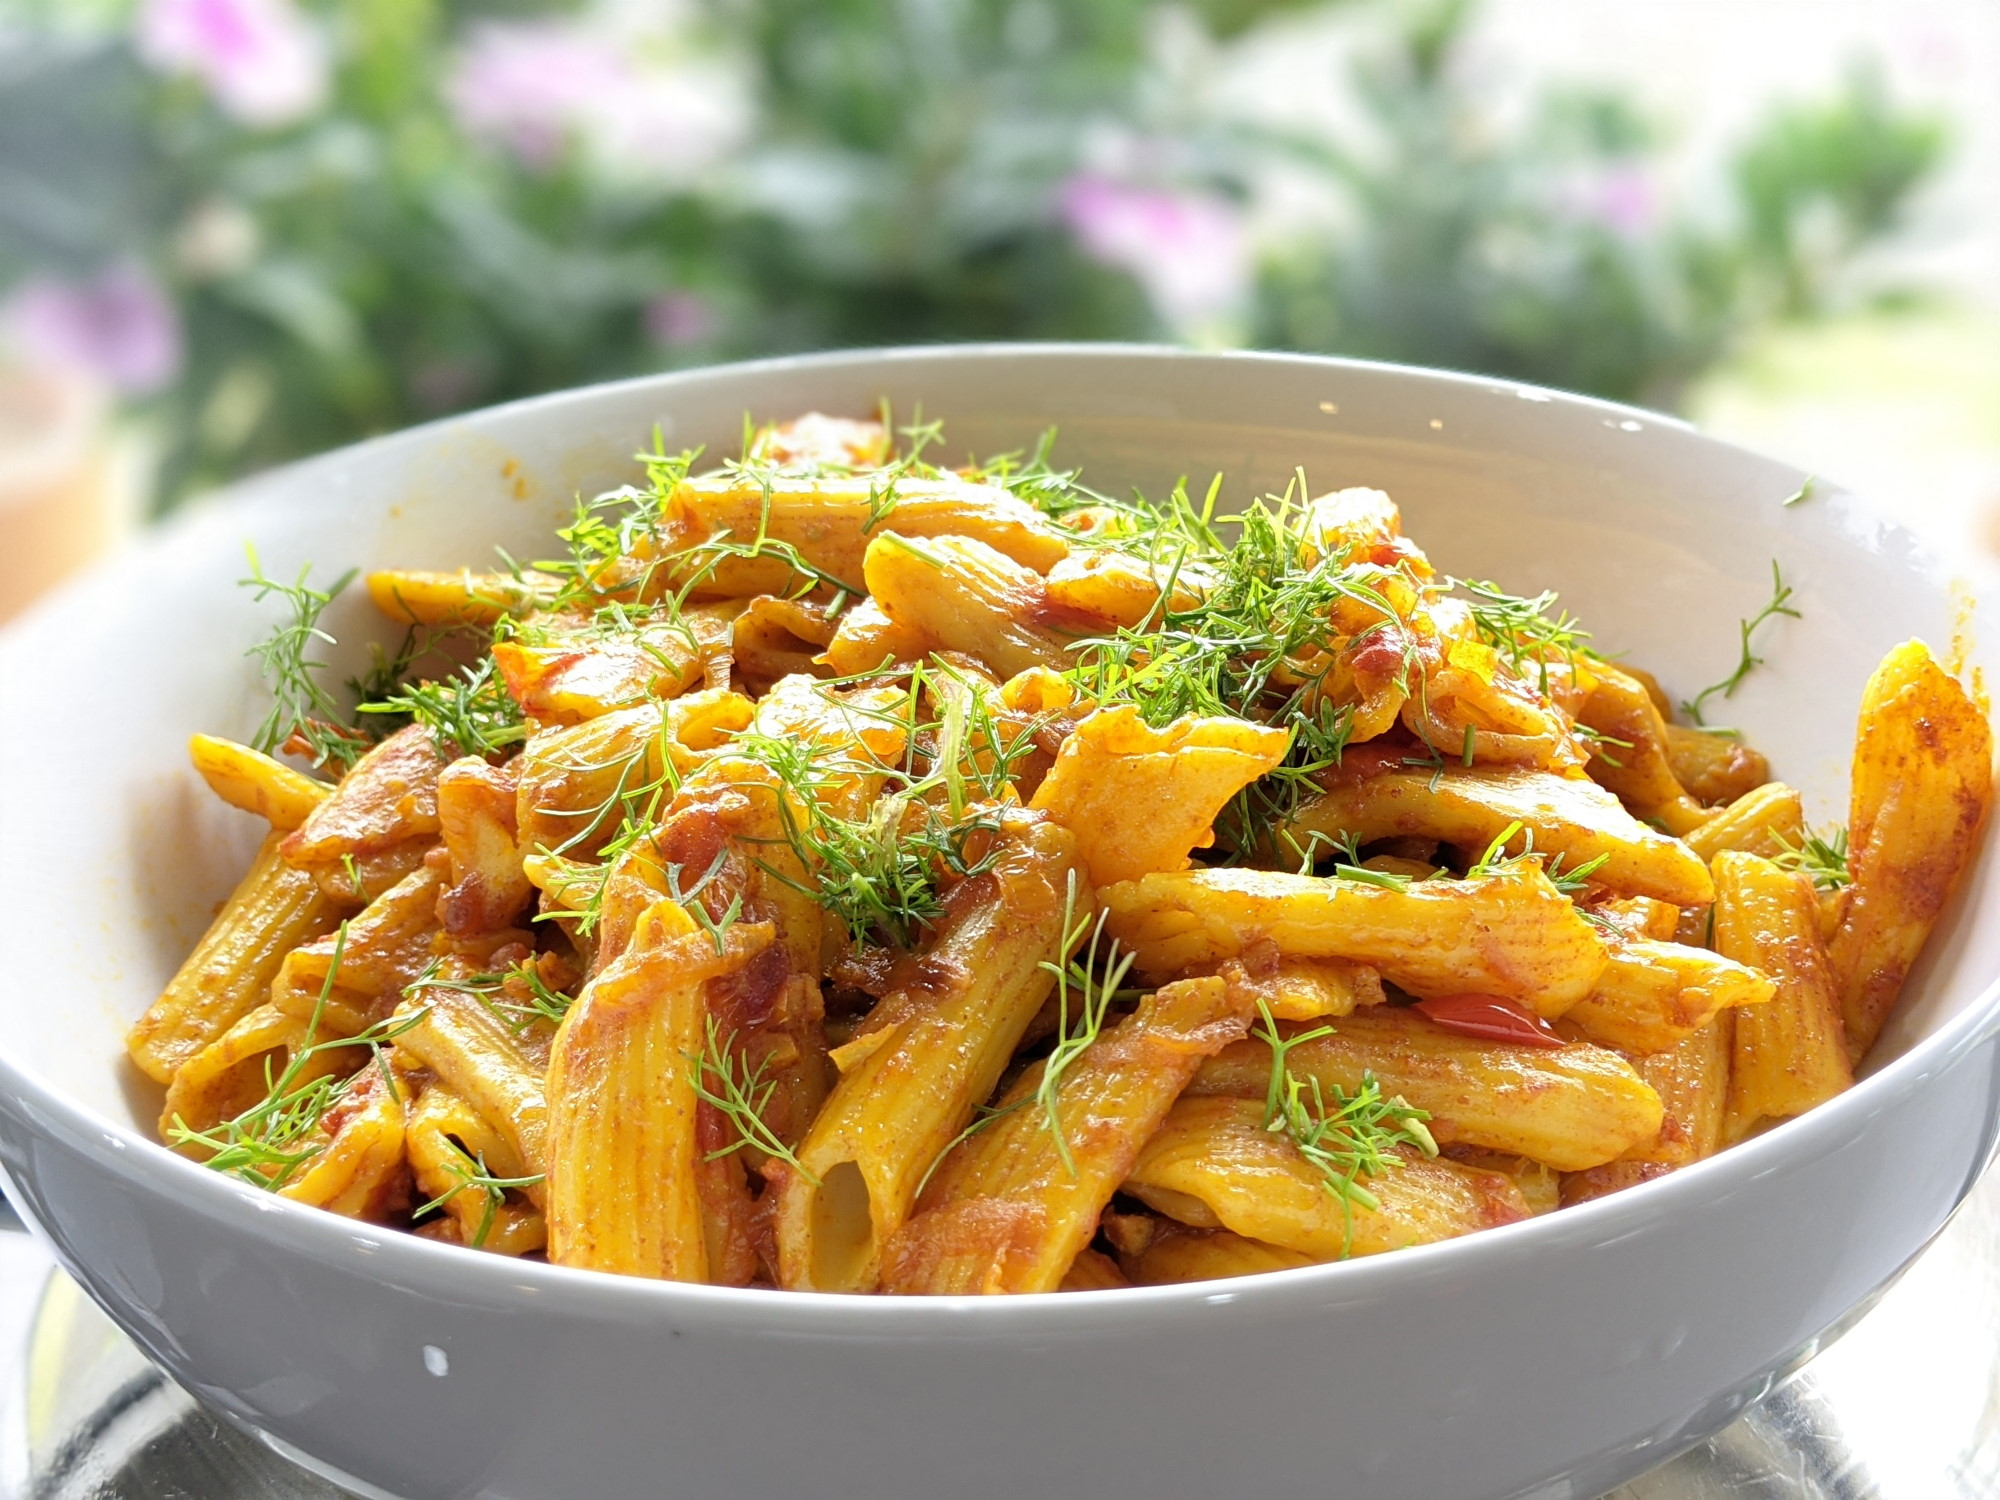 Cooked penne pasta with tomatoes and coriander